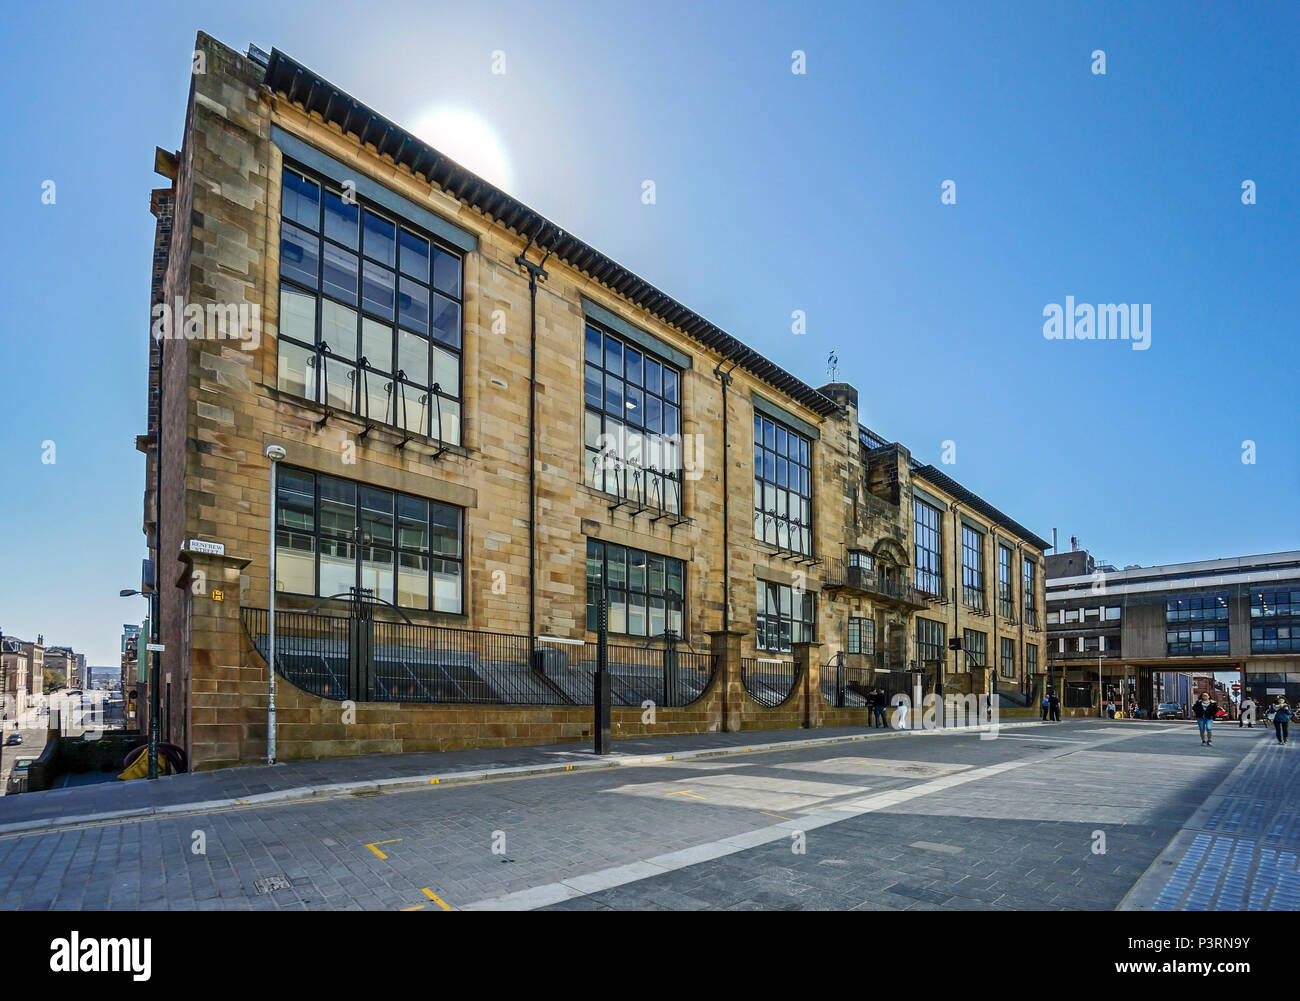 The original Charles Rennie Mackintosh designed building forming part of the Glasgow School of Art in Renfield Street Glasgow Scotland UK - Stock Image